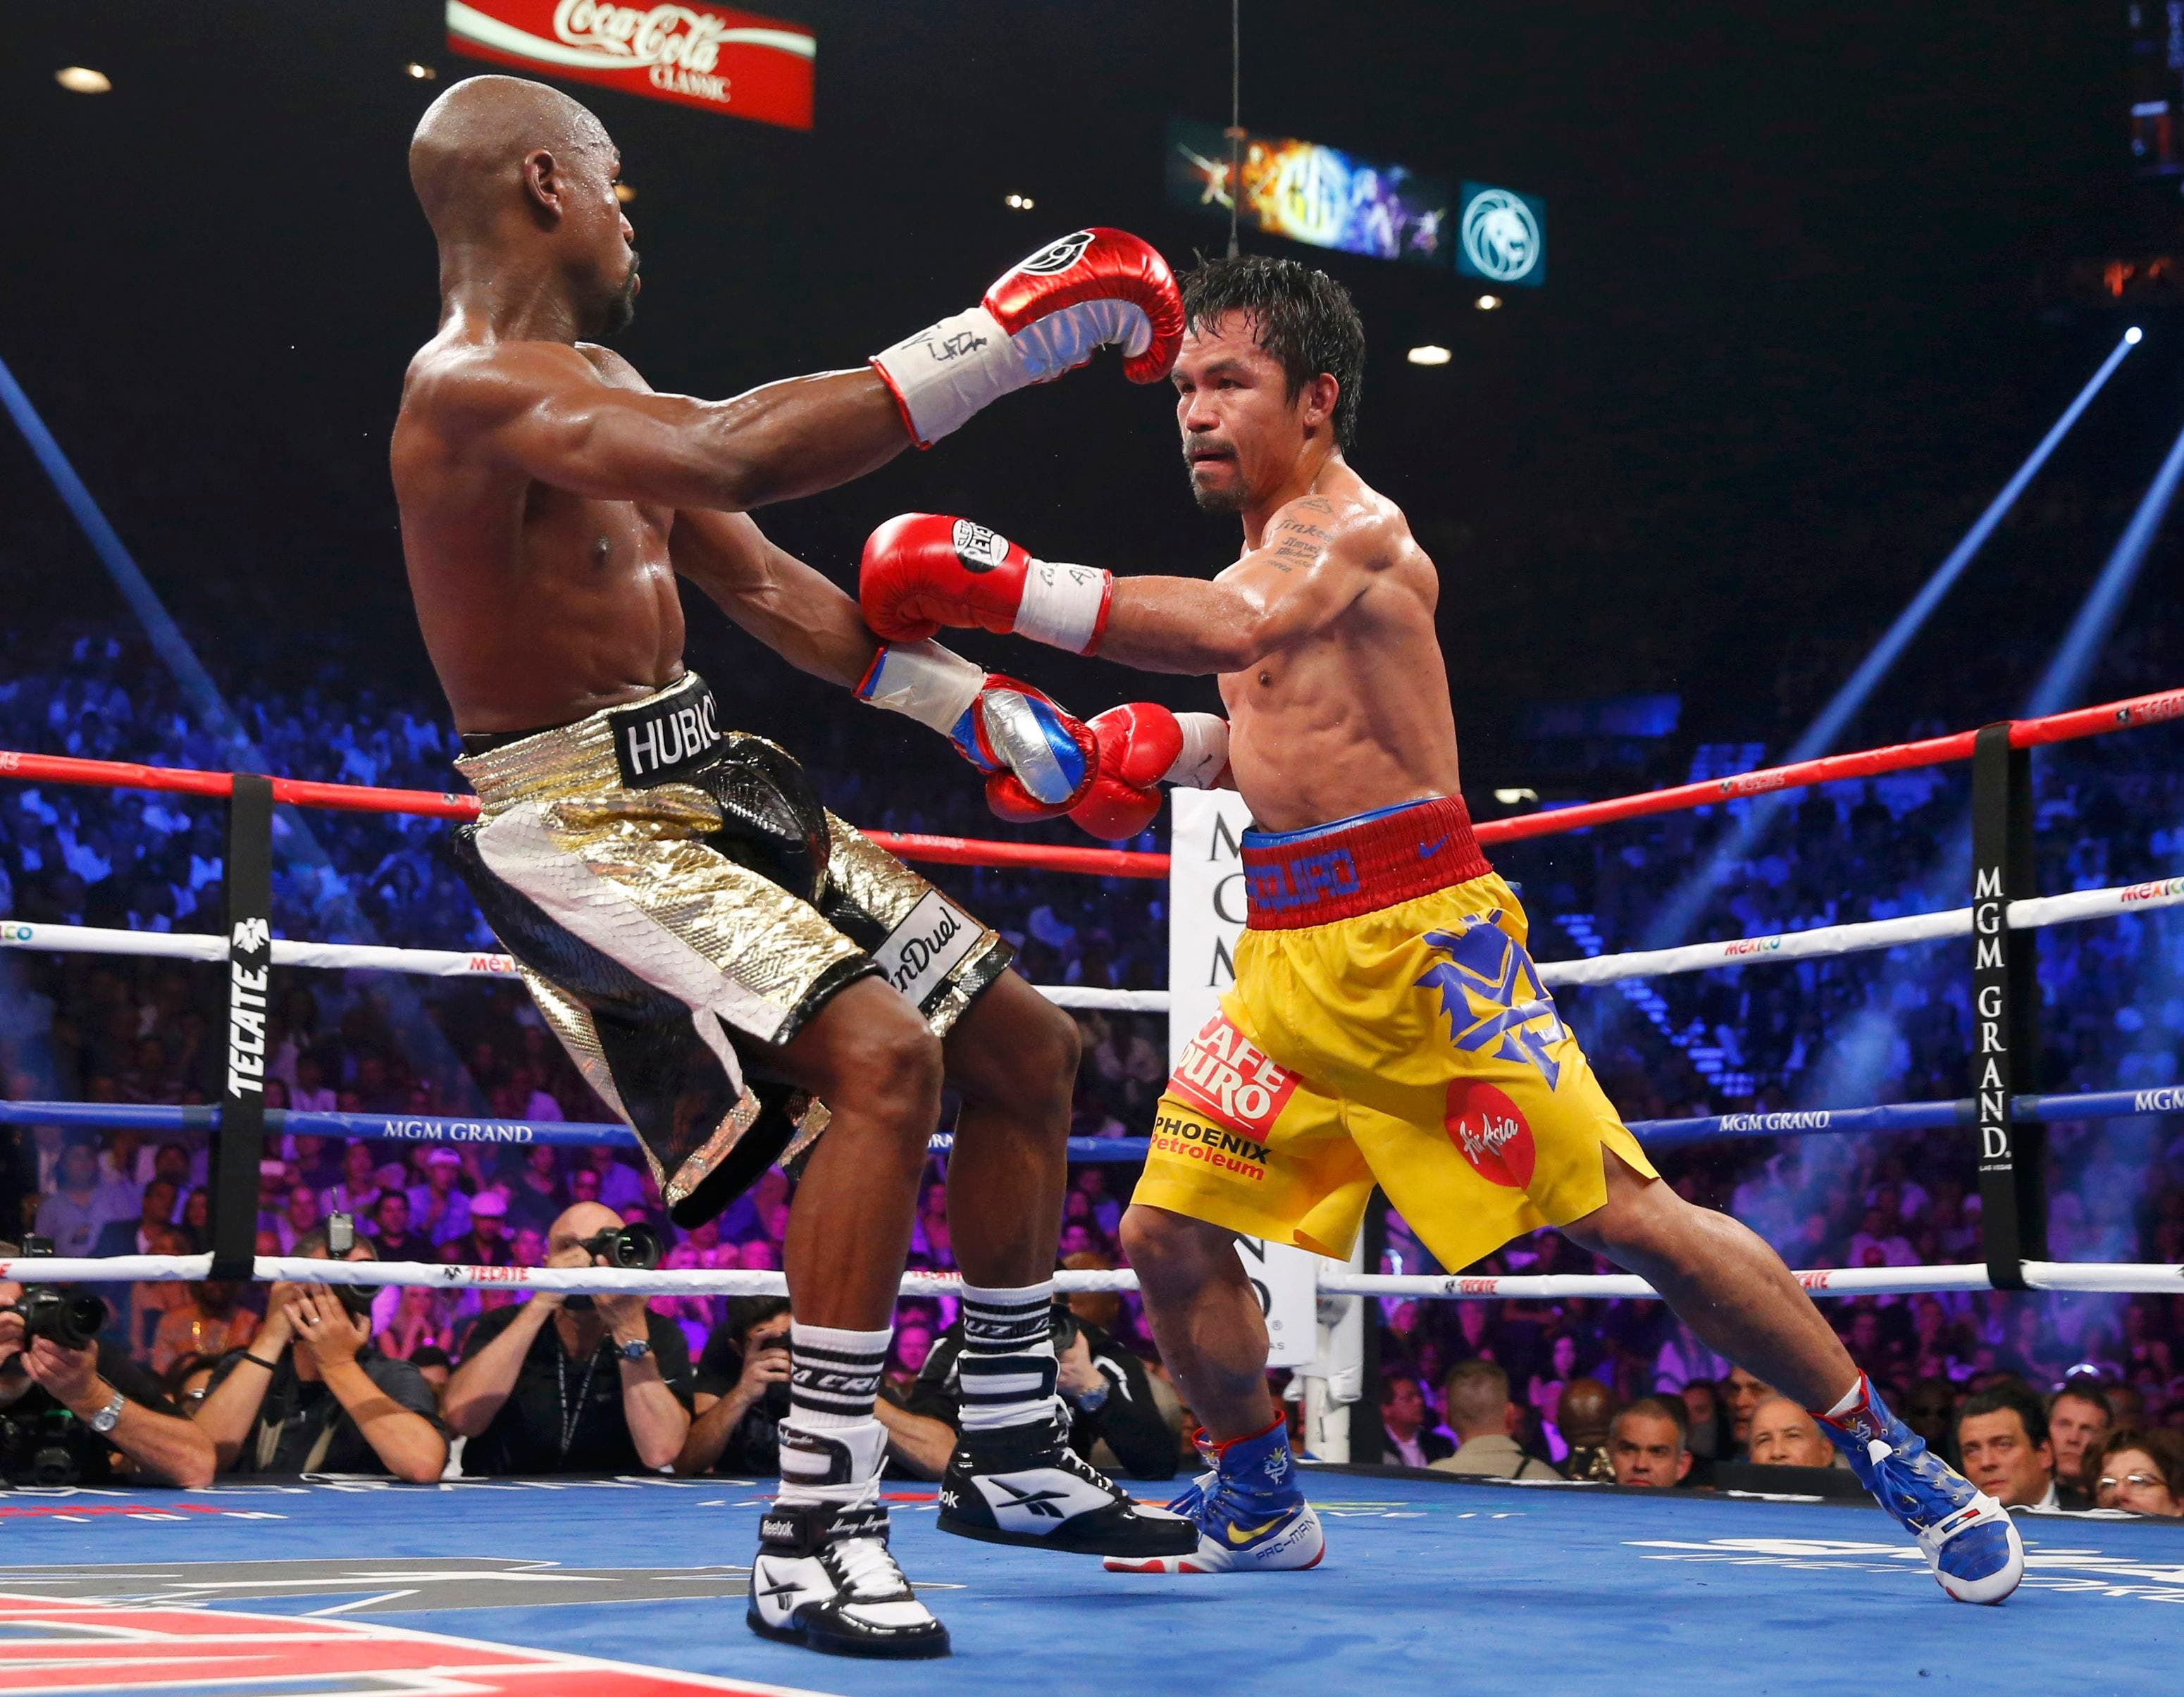 Pacquiao of the Philippines lands a left in the seventh round against Mayweather, Jr. of the U.S. during their welterweight title fight in Las Vegas. (Reuters)